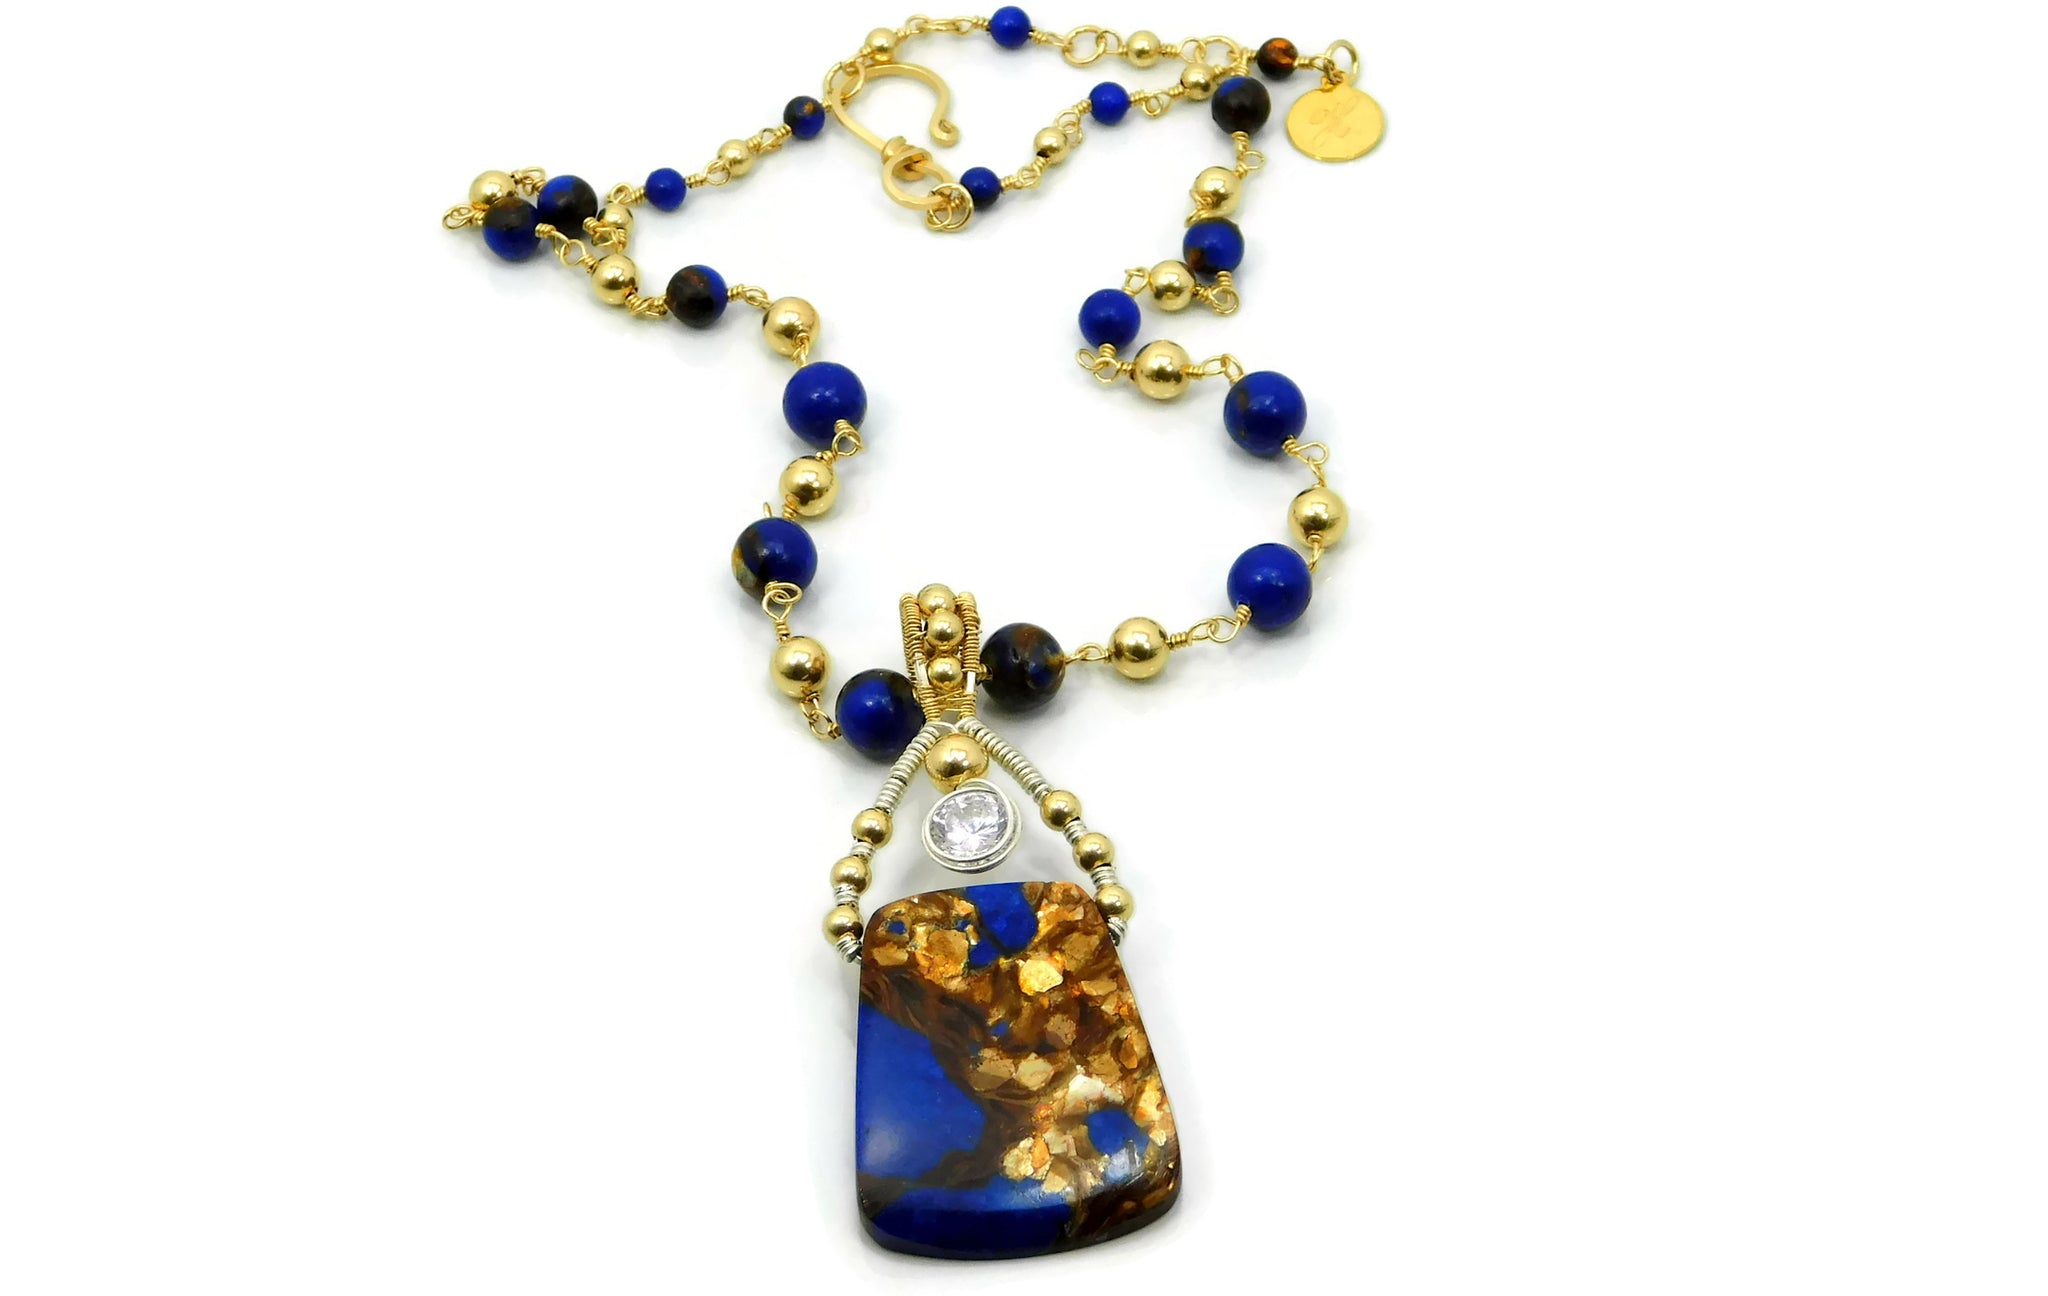 Lapis & Bronzite Bliss Trapezoid Pendant with Herkimer Diamonds in 14kt gold fill and sterling silver